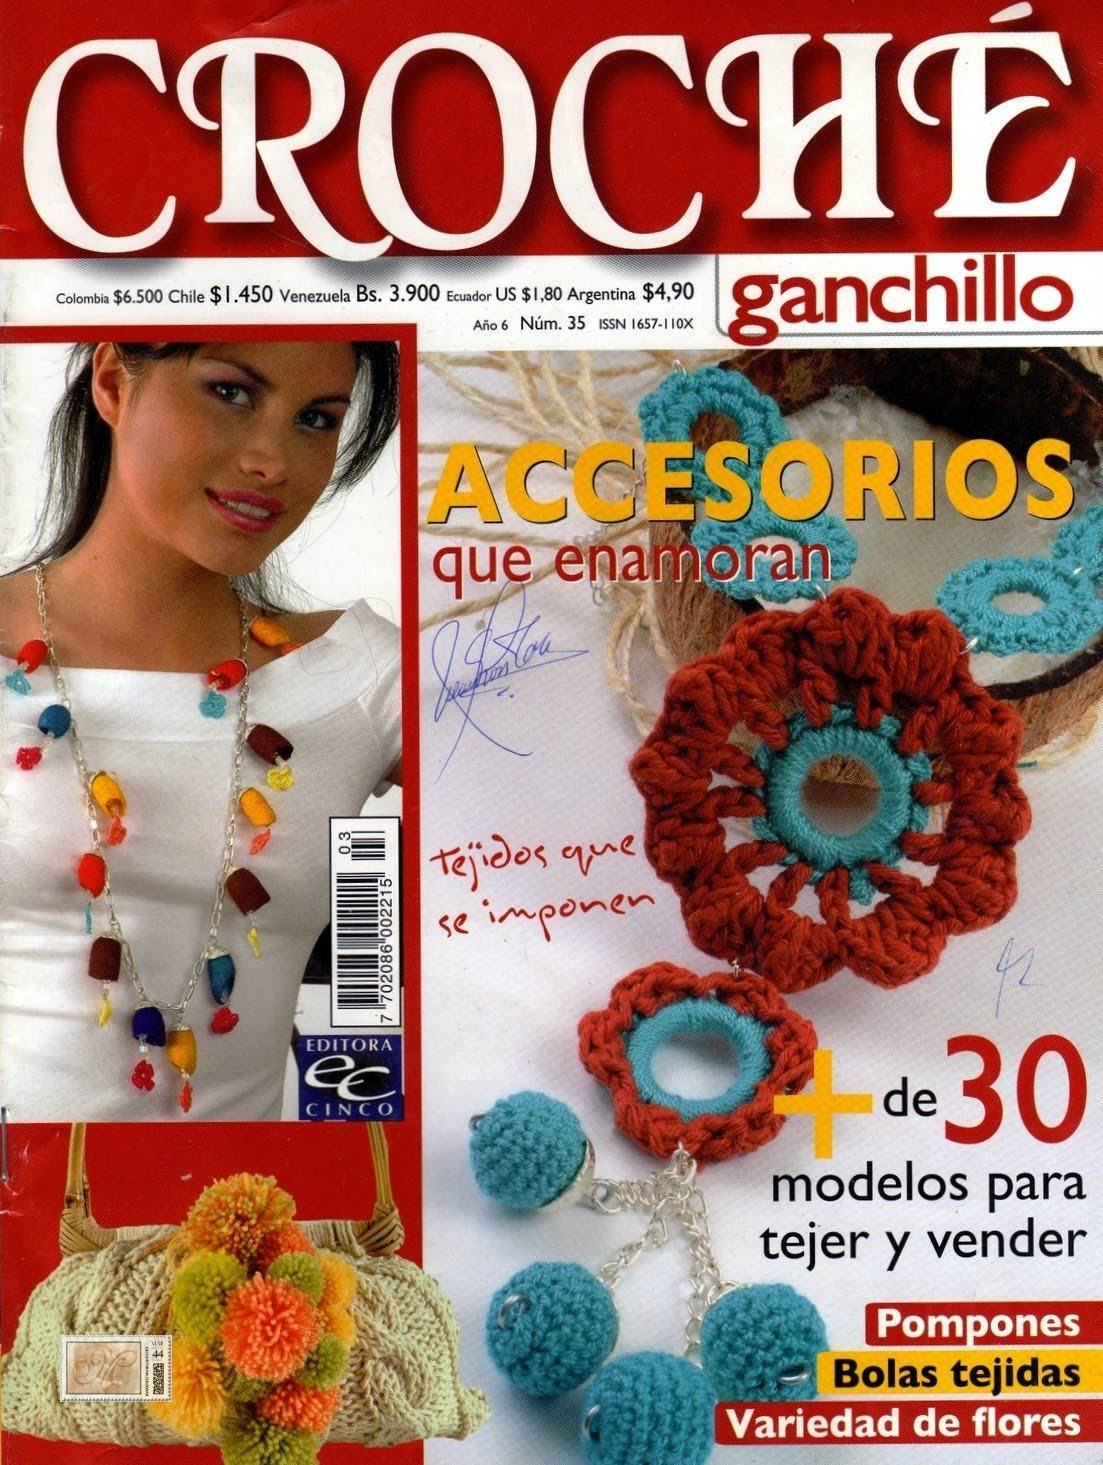 Revistas de crochet: abril 2010